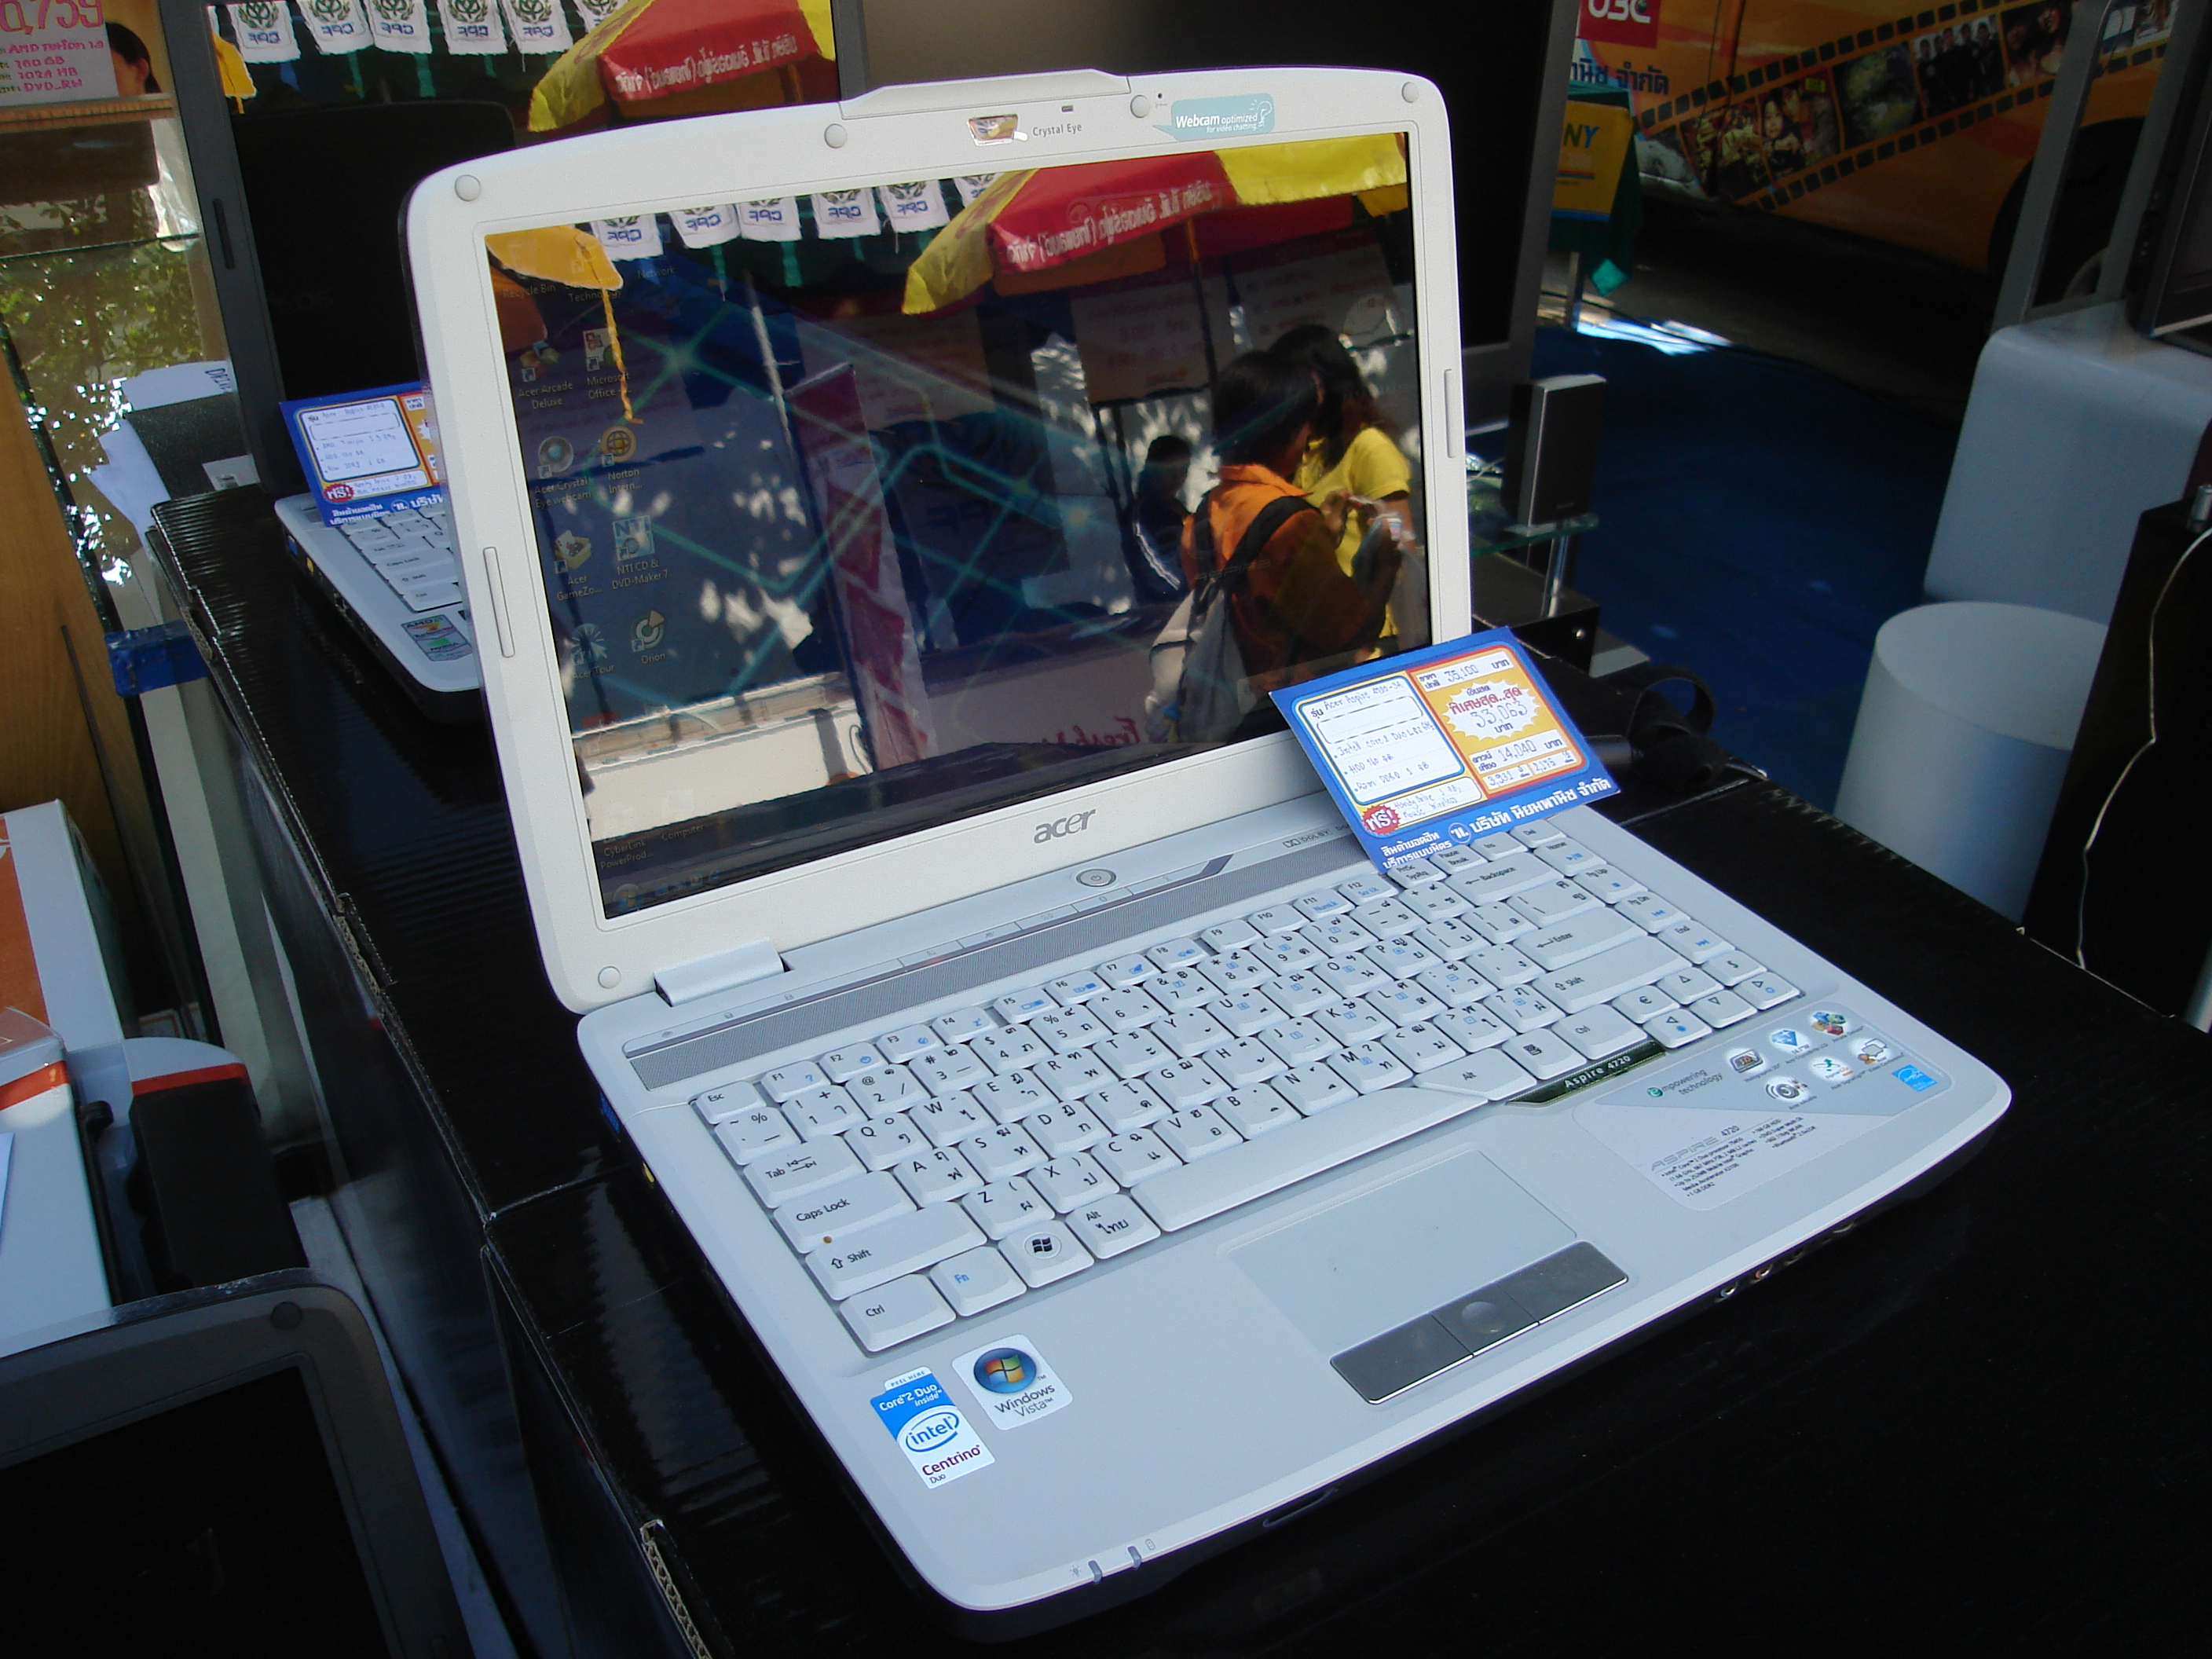 ACER ASPIRE 4720G CAMERA DRIVERS DOWNLOAD